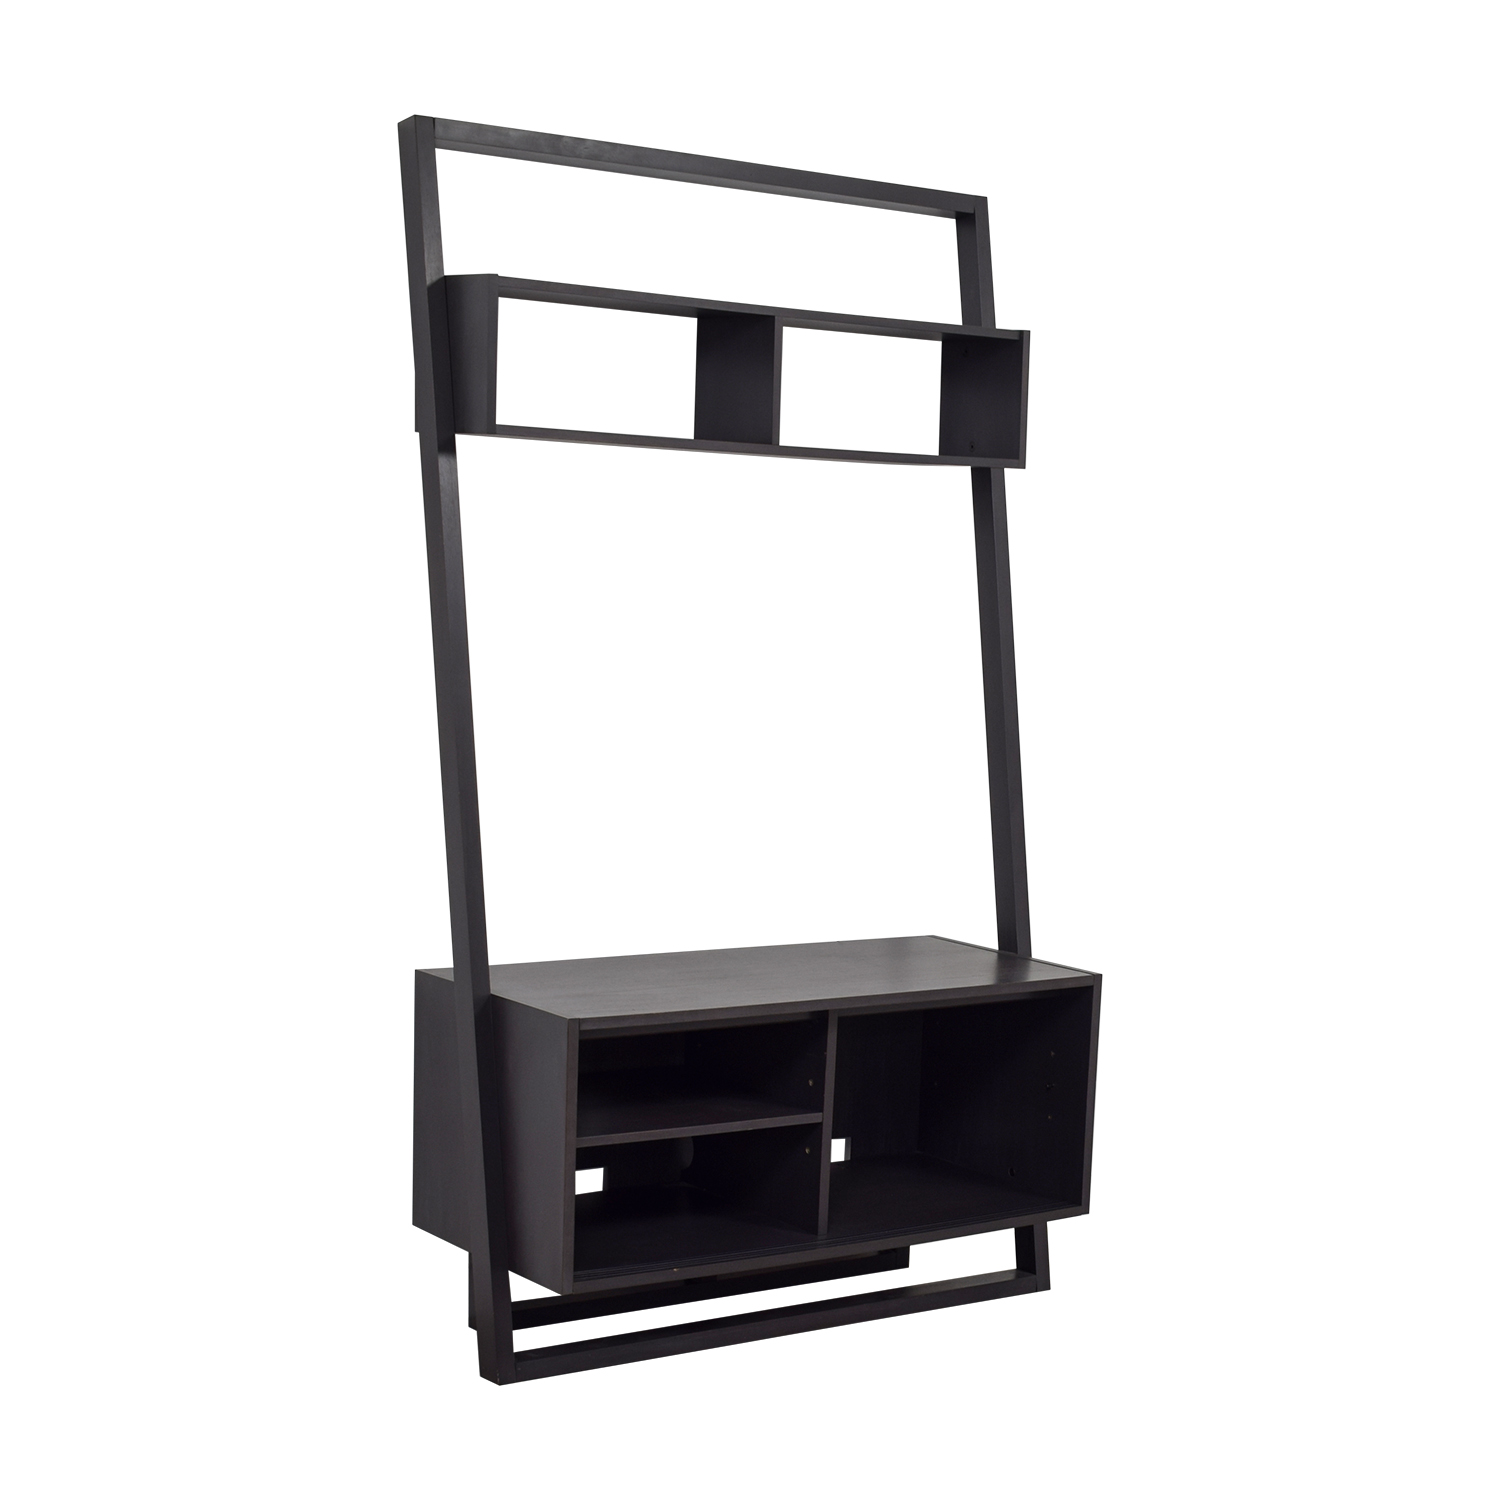 Crate & Barrel Crate & Barrel Sloane Leaning Media Stand used